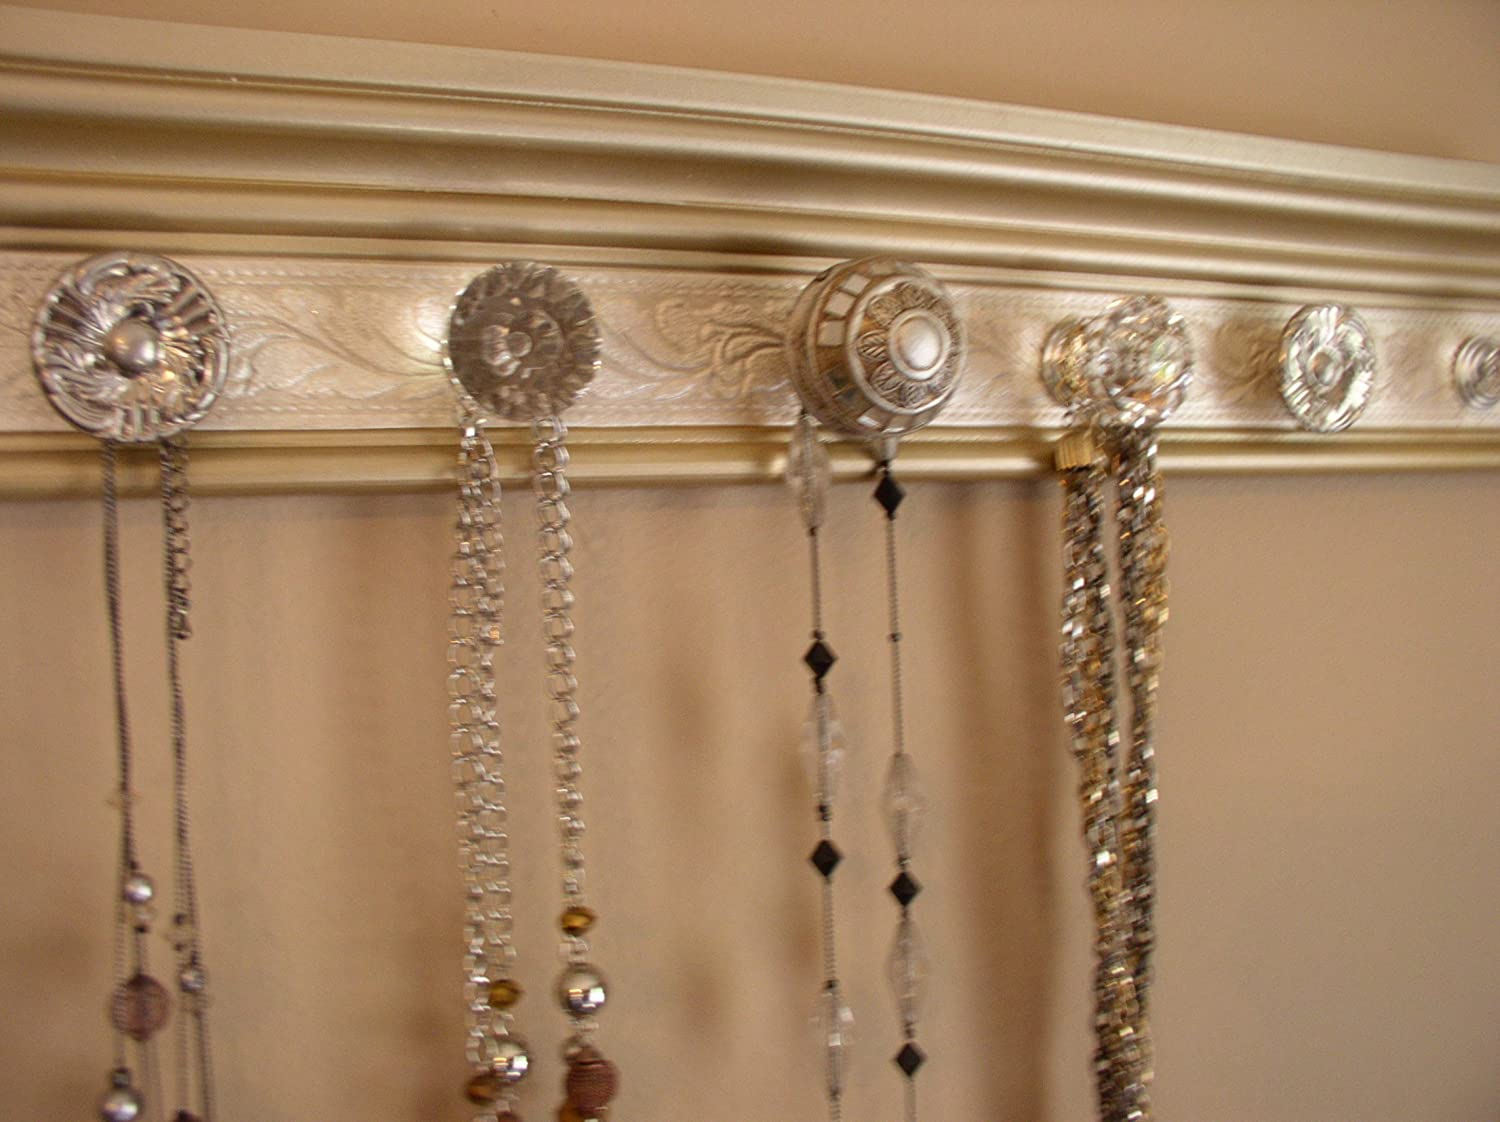 Available in 3 sizes with 5, 7 or 9 Knobs. Champagne Gold Jewelry Organizer.